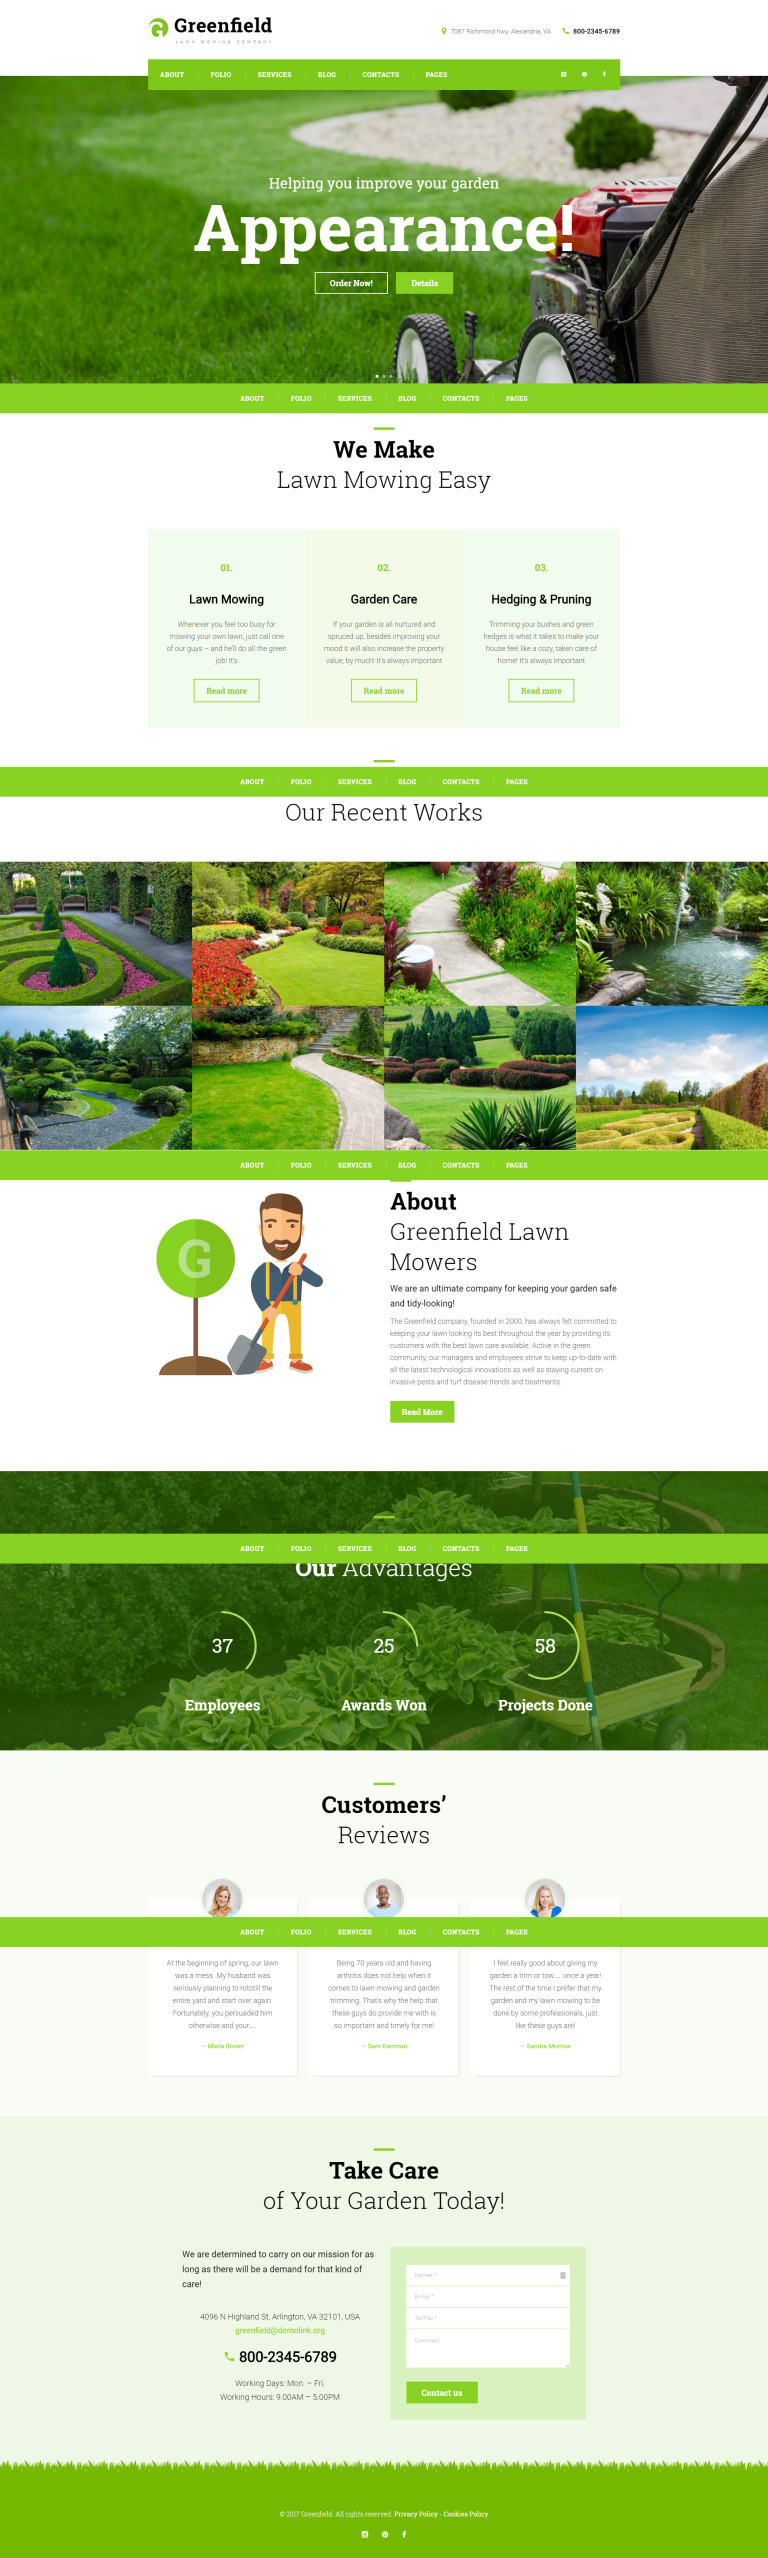 GreenField - Lawn Mowing Company Responsive WordPress Theme New Screenshots BIG